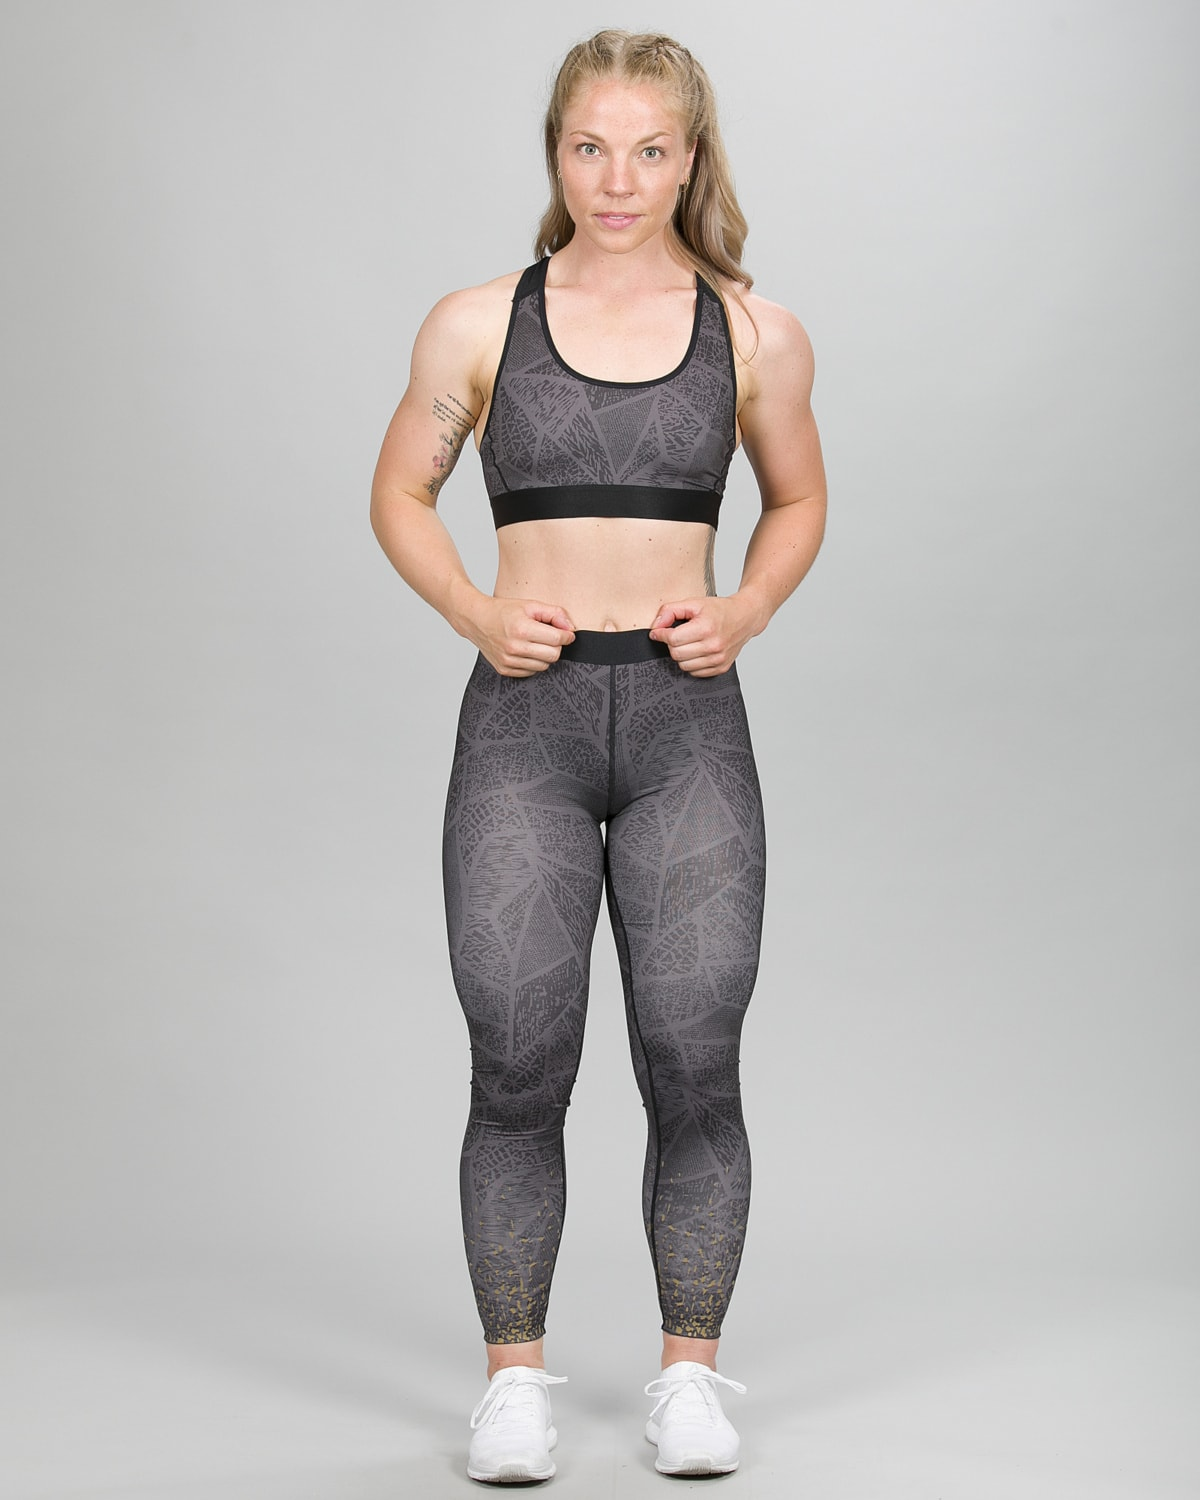 Skiny SK86 Long Running Tights 083114 and Crop Top 082701 – Dark Graphic e